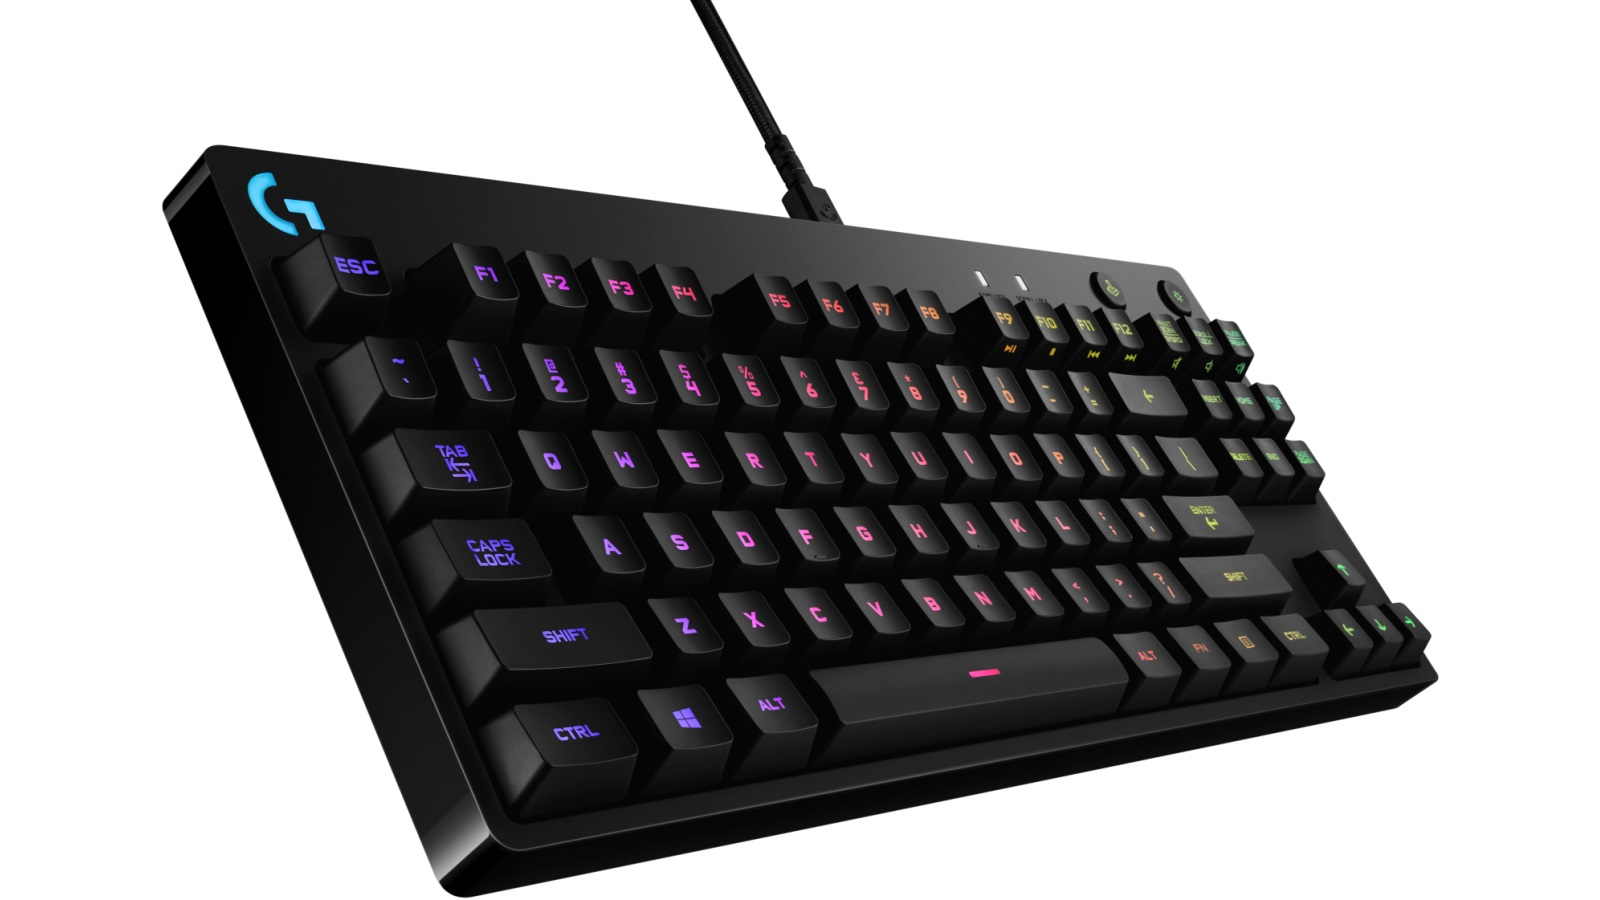 Logitech G Pro Mechanical Gaming Keyboard